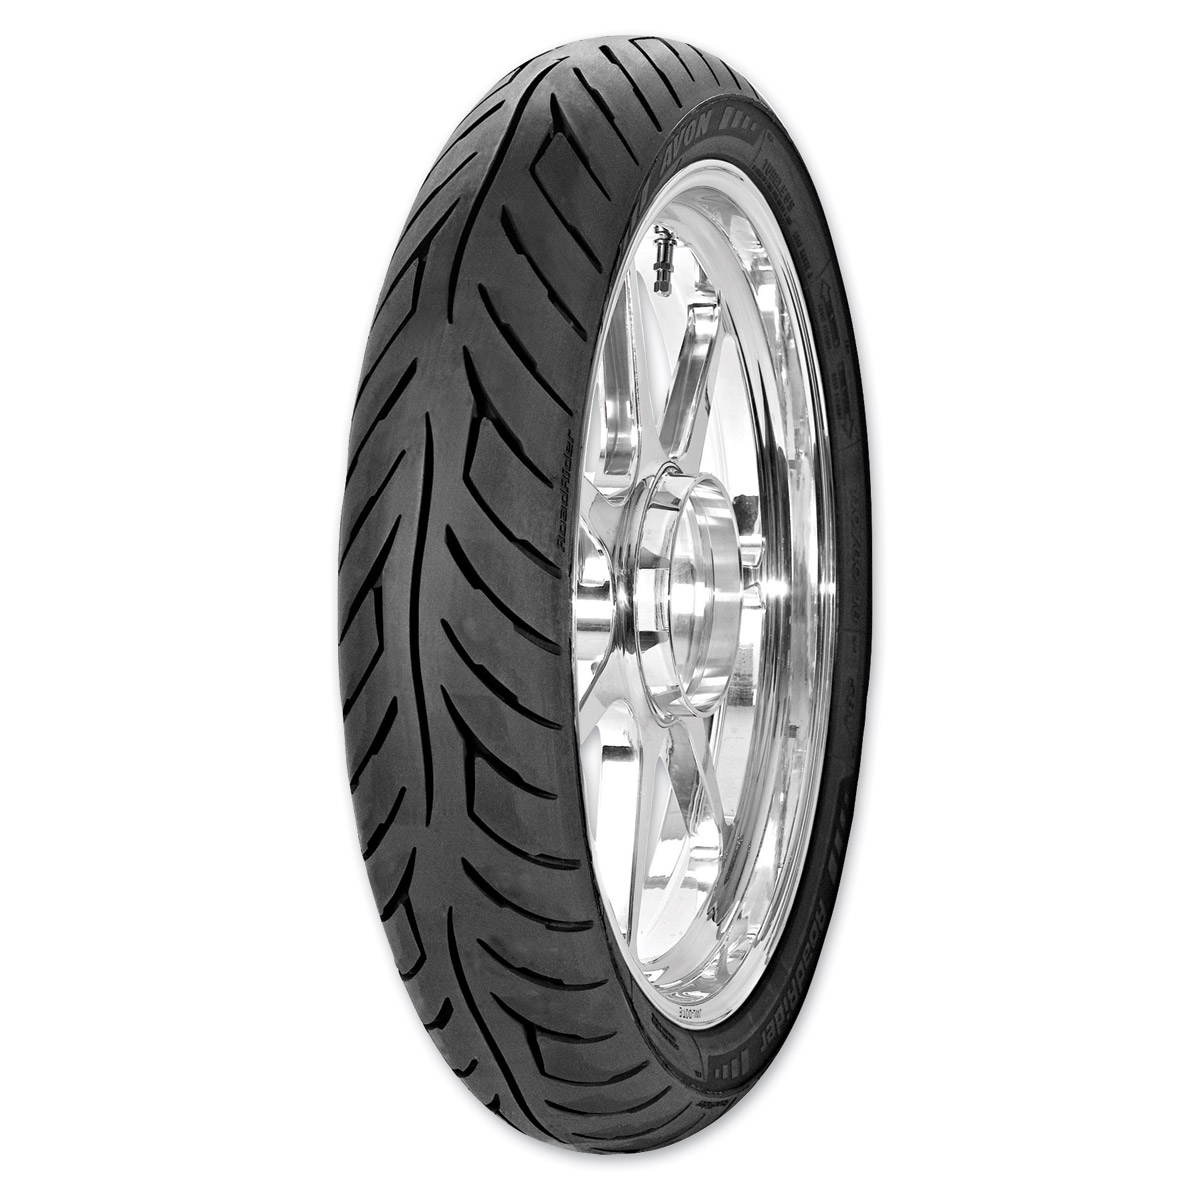 Avon Motorcycle Tires >> Avon Am26 Roadrider 90 90 19 Front Tire 90000000660 Jpcycles Com